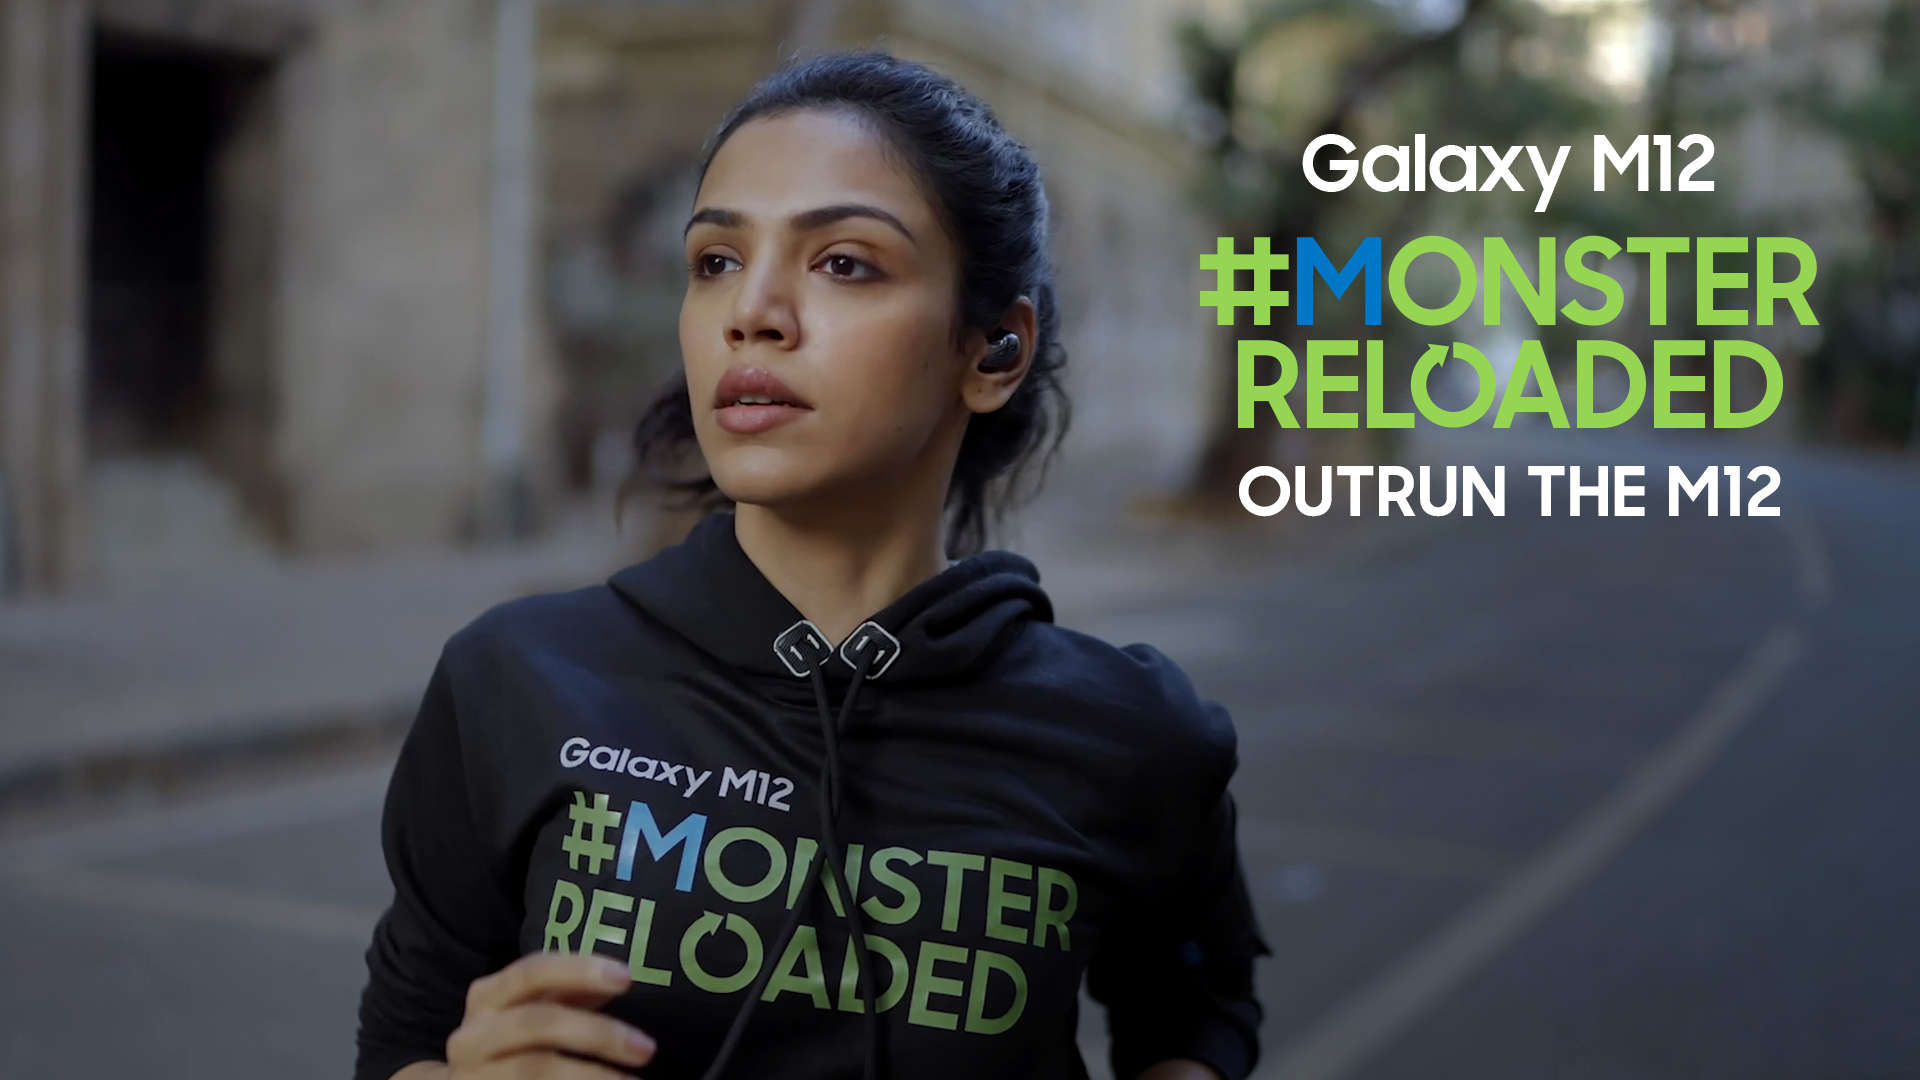 samsung-galaxy-m12-shriya-pilgaonkar-tries-hard-for-the-monsterreloaded-challenge